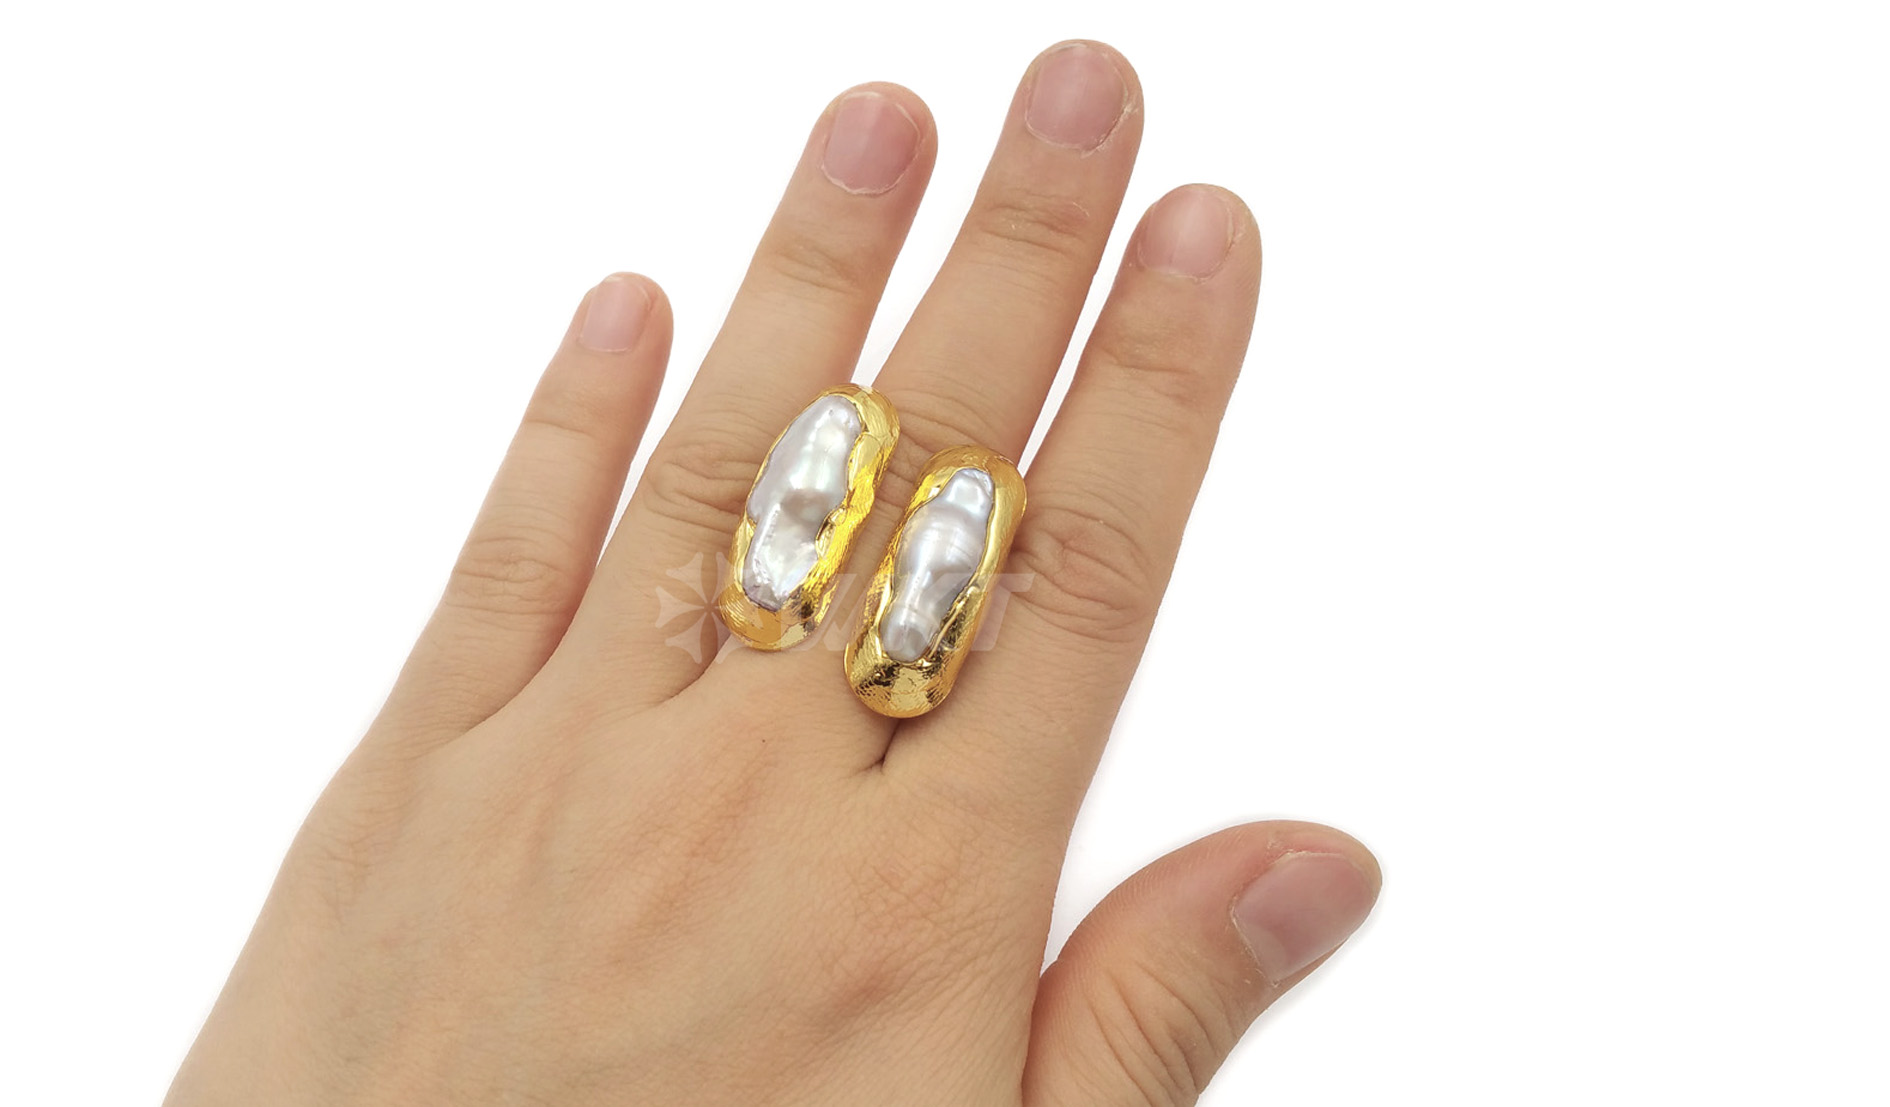 WT-R332 Classic unique Each one is different two Pearls Jewelry in Gold plated Adjustable Natural Freshwater Pearl Rings